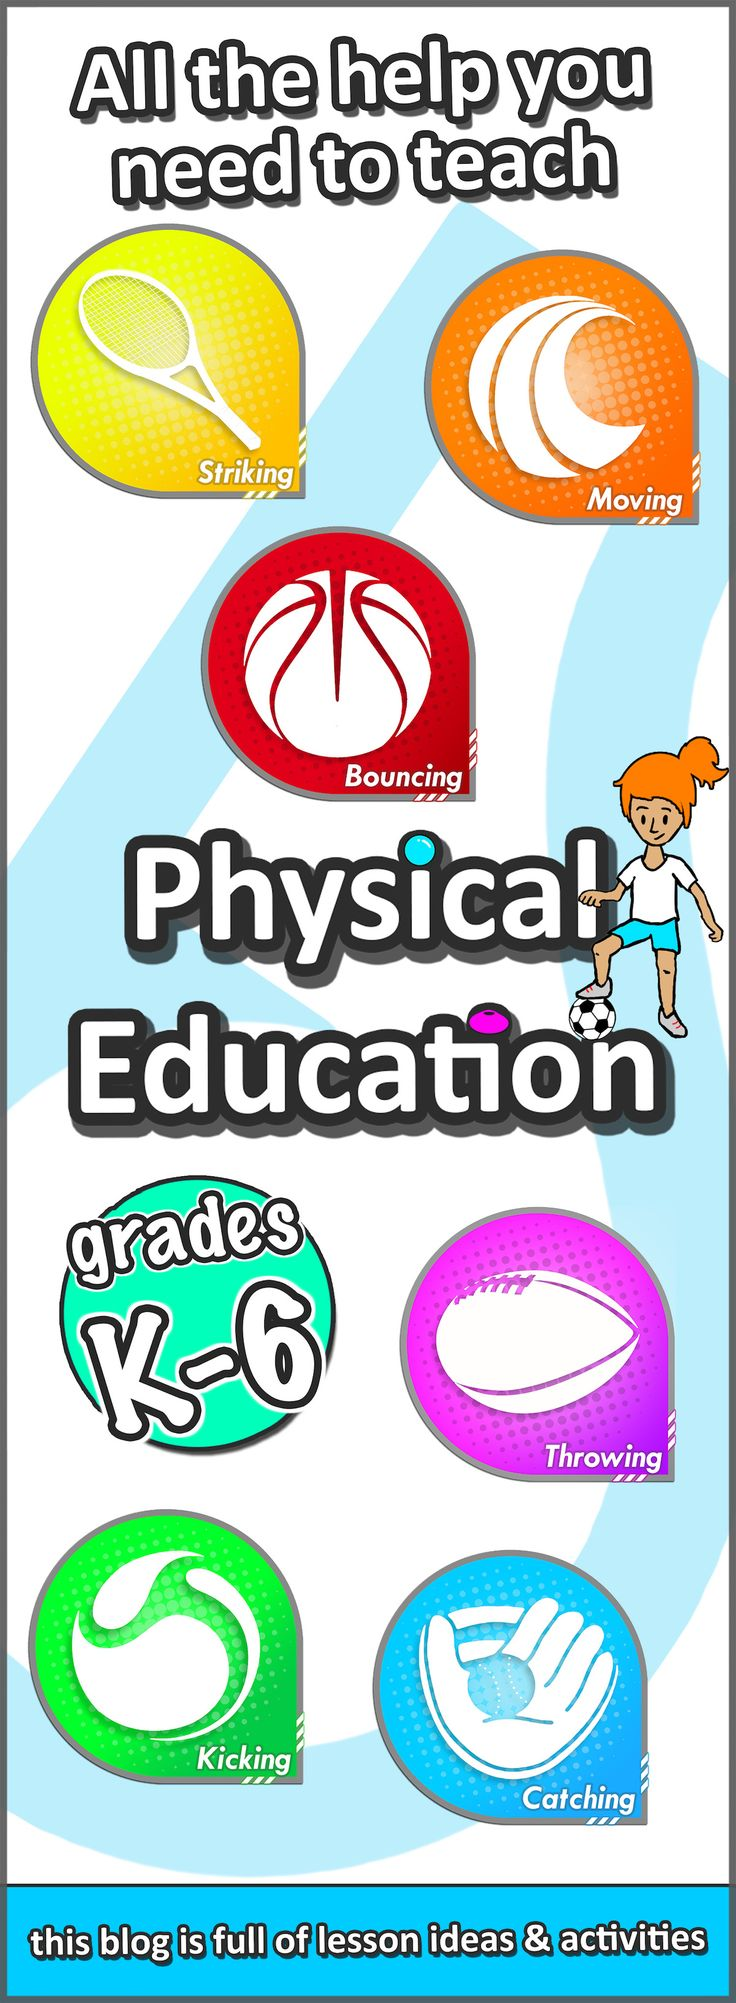 PE lesson ideas, how to teach sport skills, and game plans for your grades K-6 at elementary school - Check them out now!